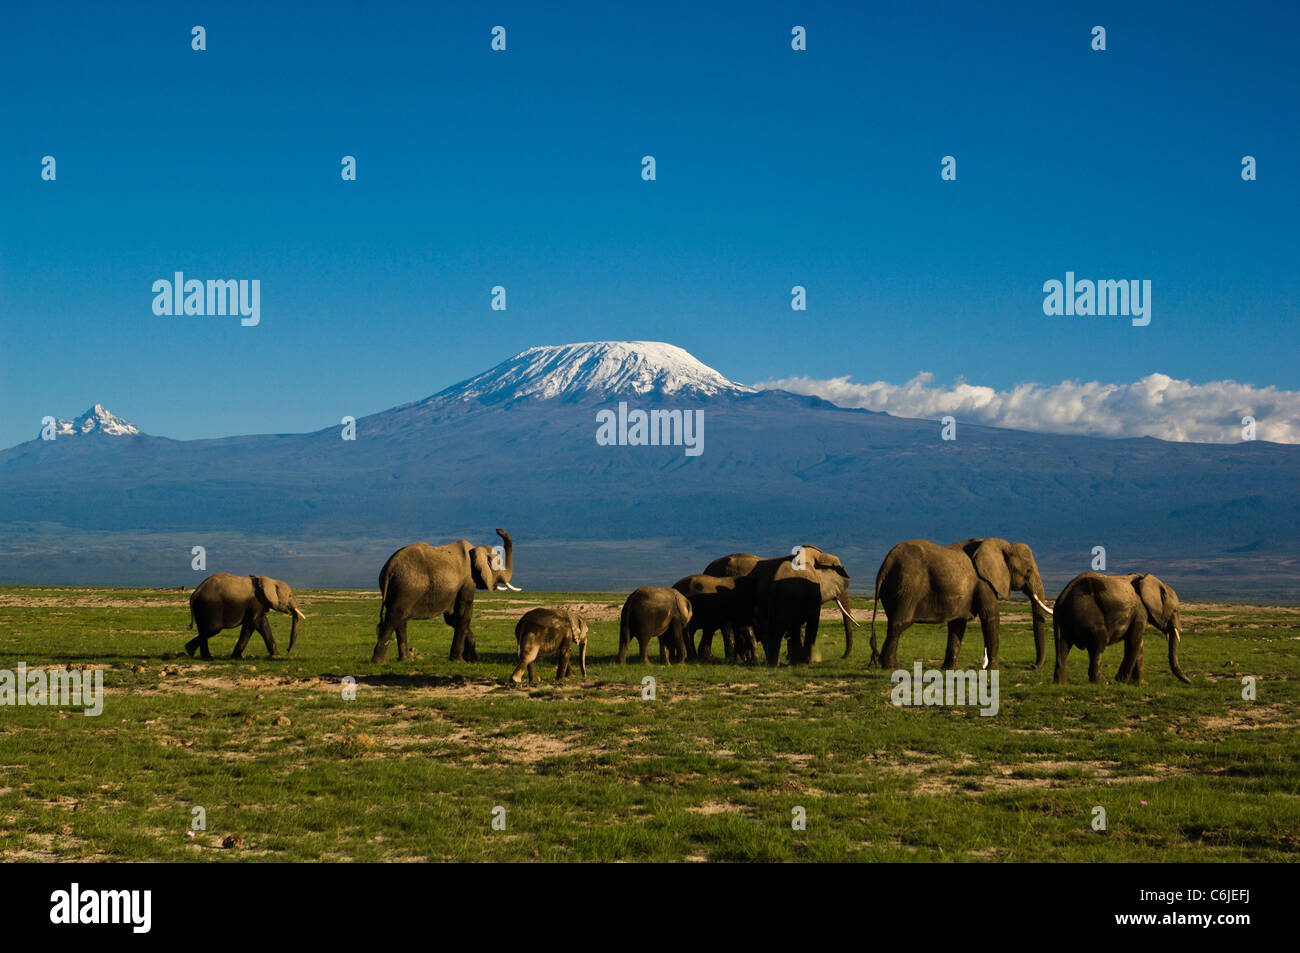 A herd of African elephants with the snow-capped Kibo and Mawenzi peaks of Mount Kilimanjaro in the background. - Stock Image